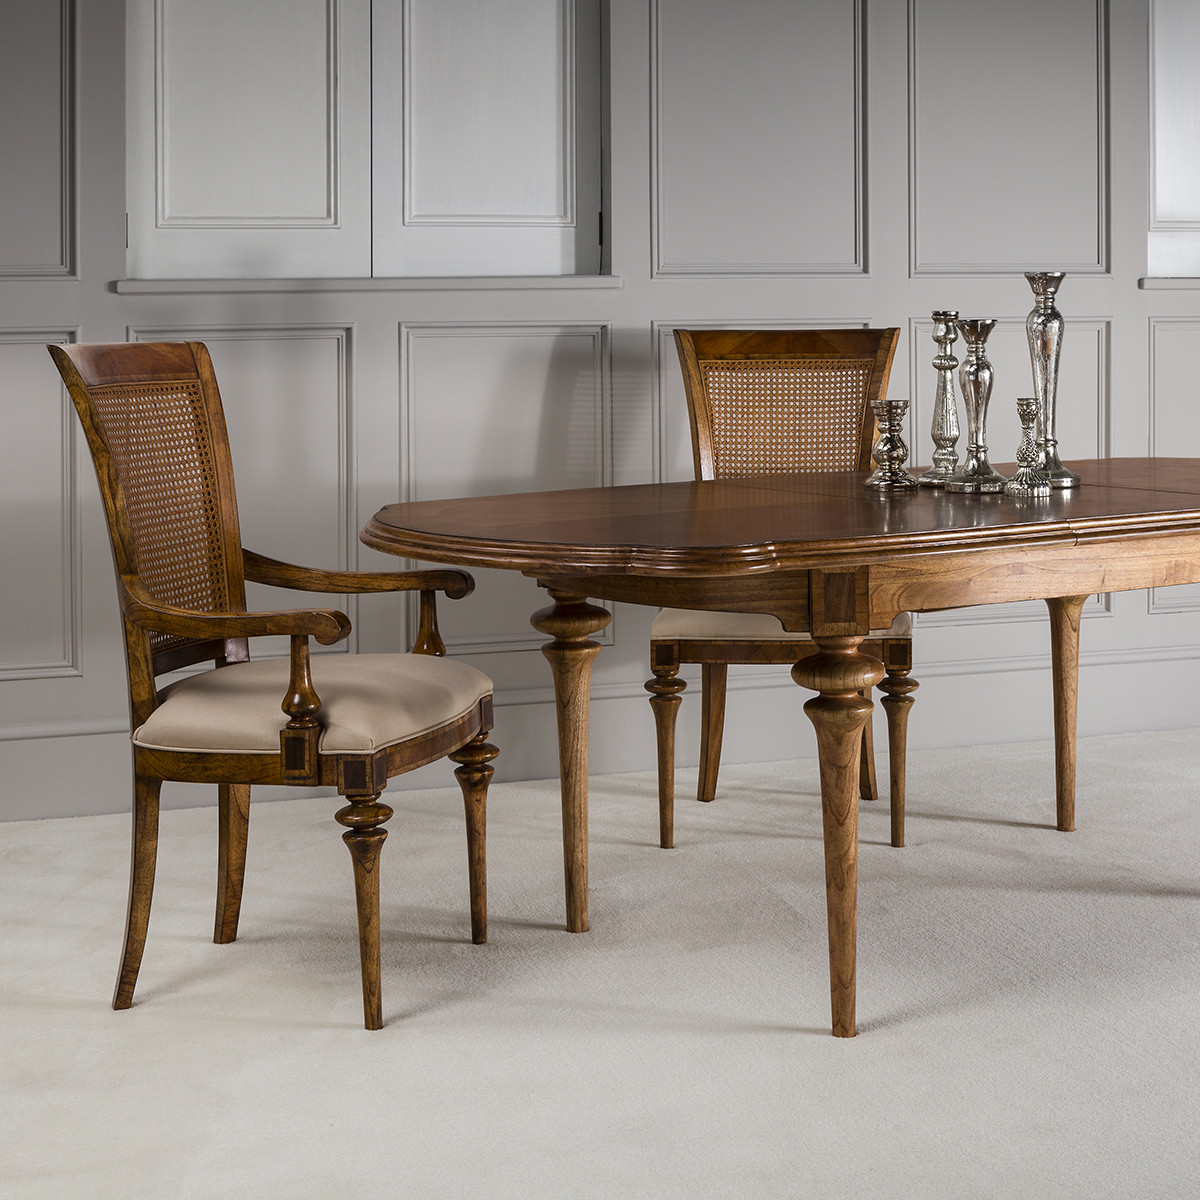 Lille Traditional French Oval Extending Dining Table Intended For Most Up To Date Classic Dining Tables (View 9 of 15)